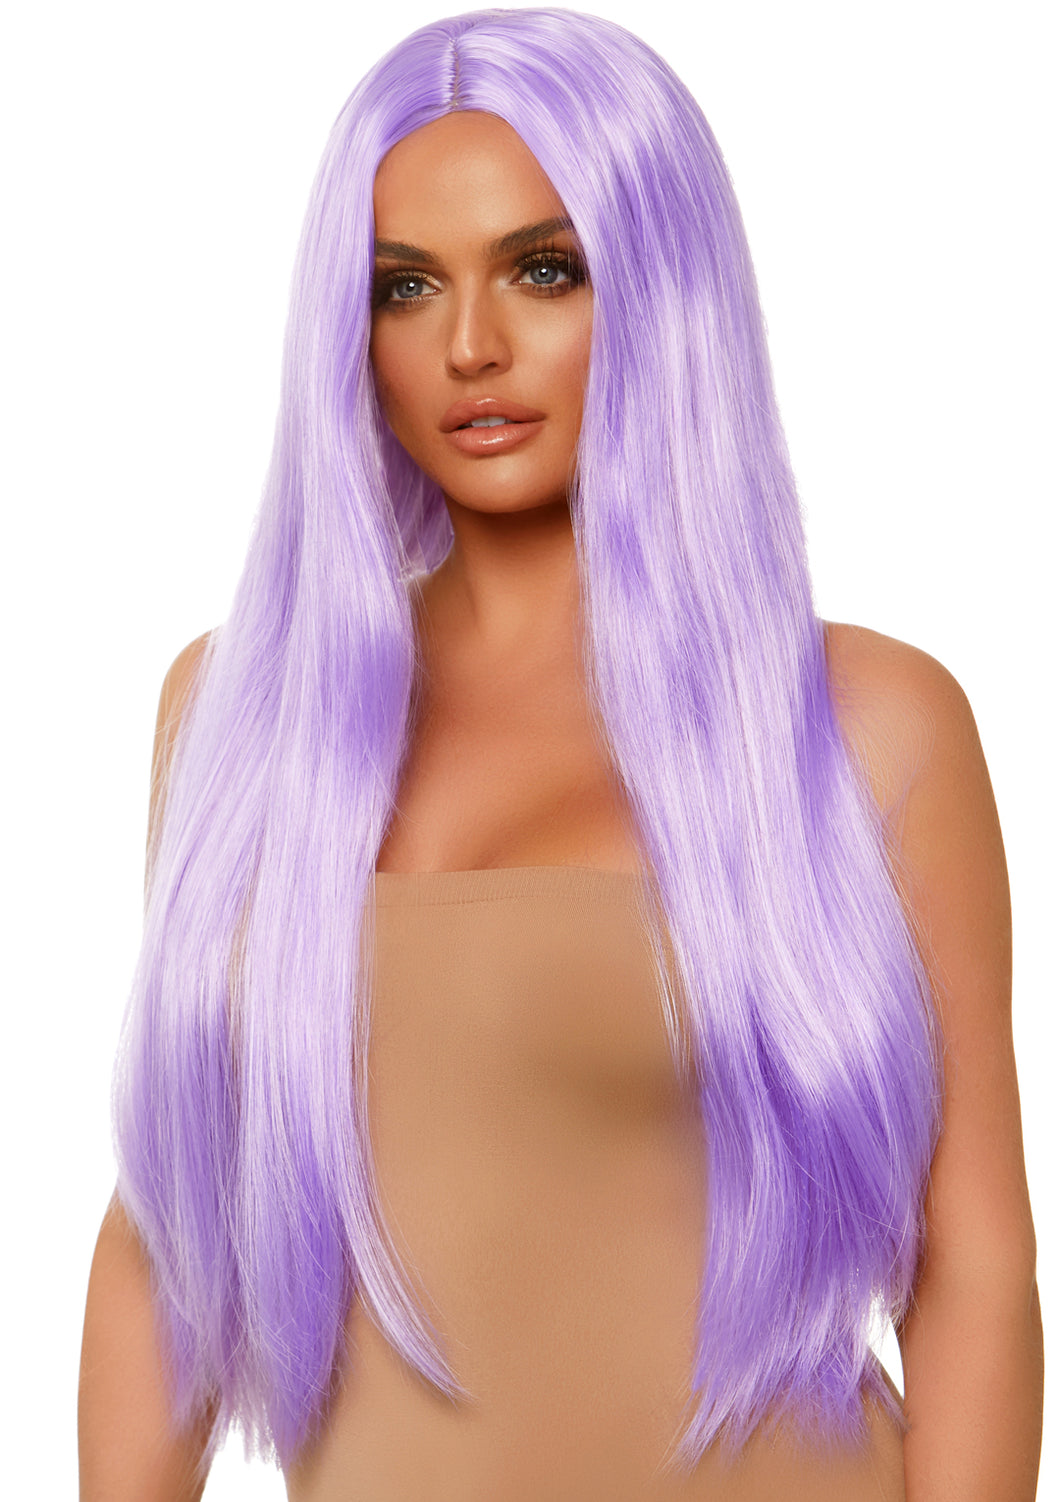 Long Straight Wig 33